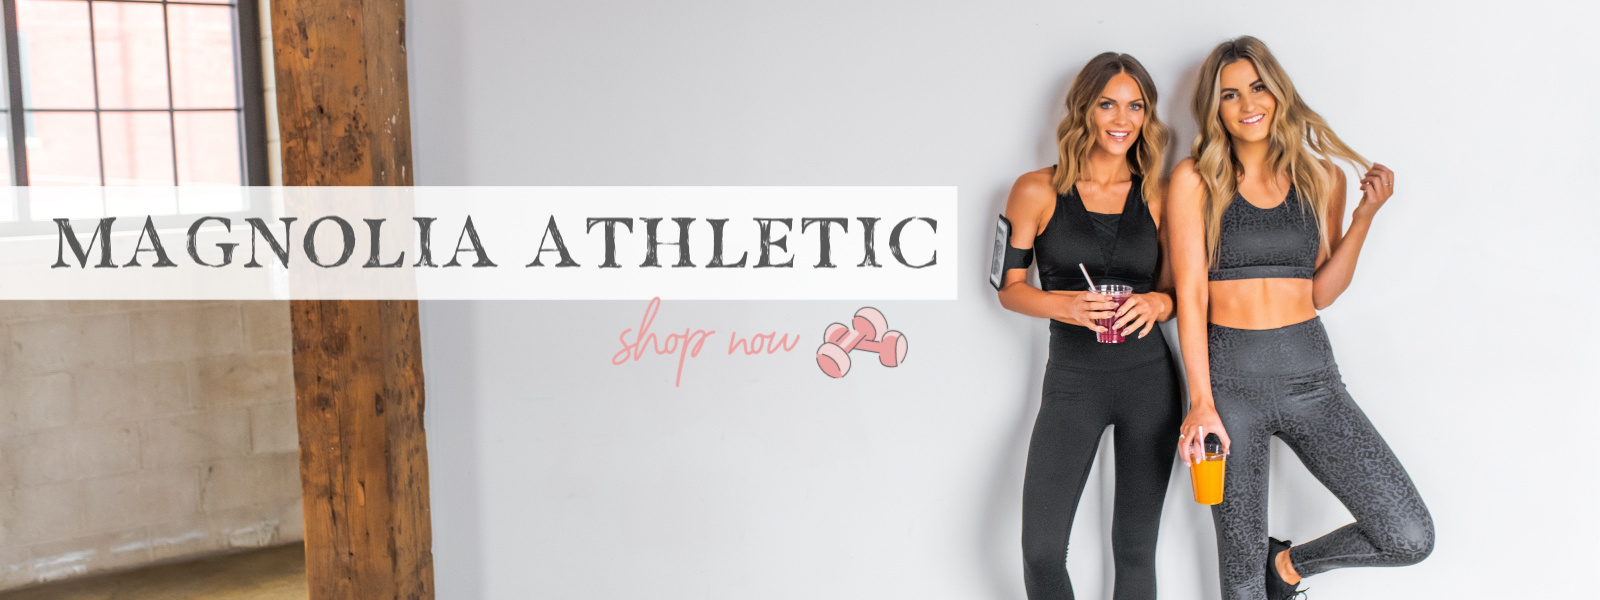 two models in workout sports bras and leggings